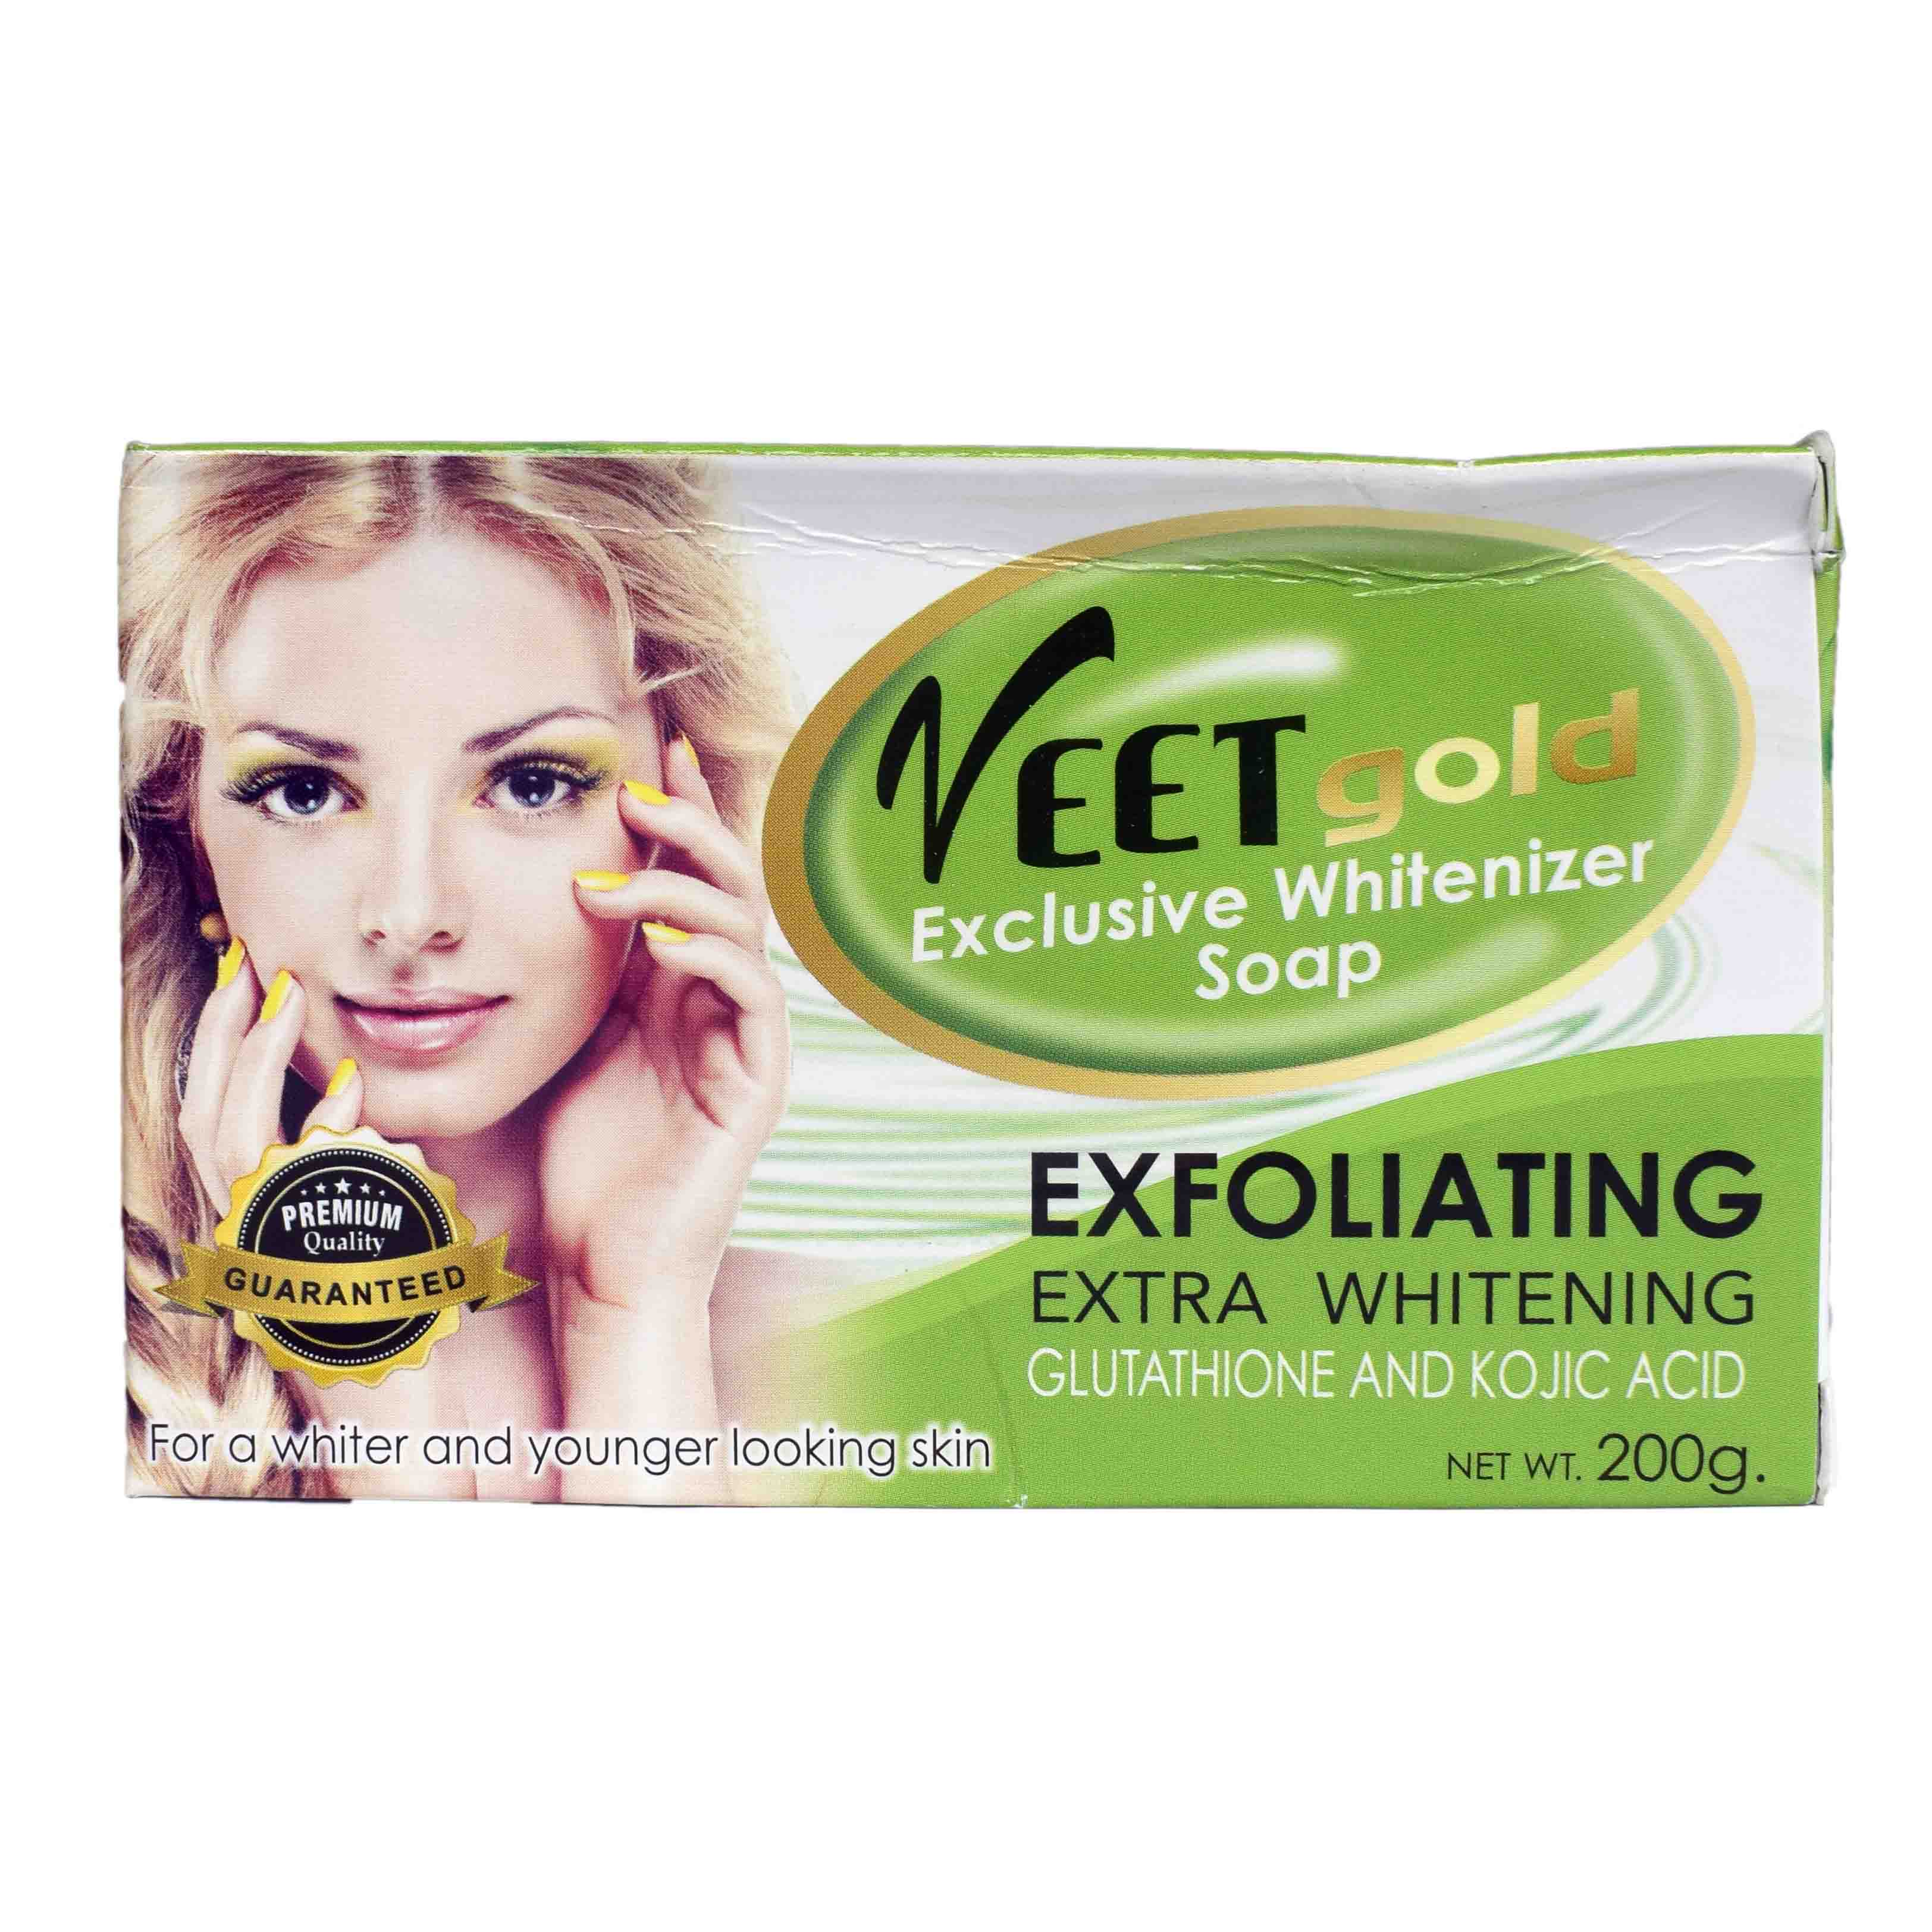 Exfoliating Extra Whitening Soap